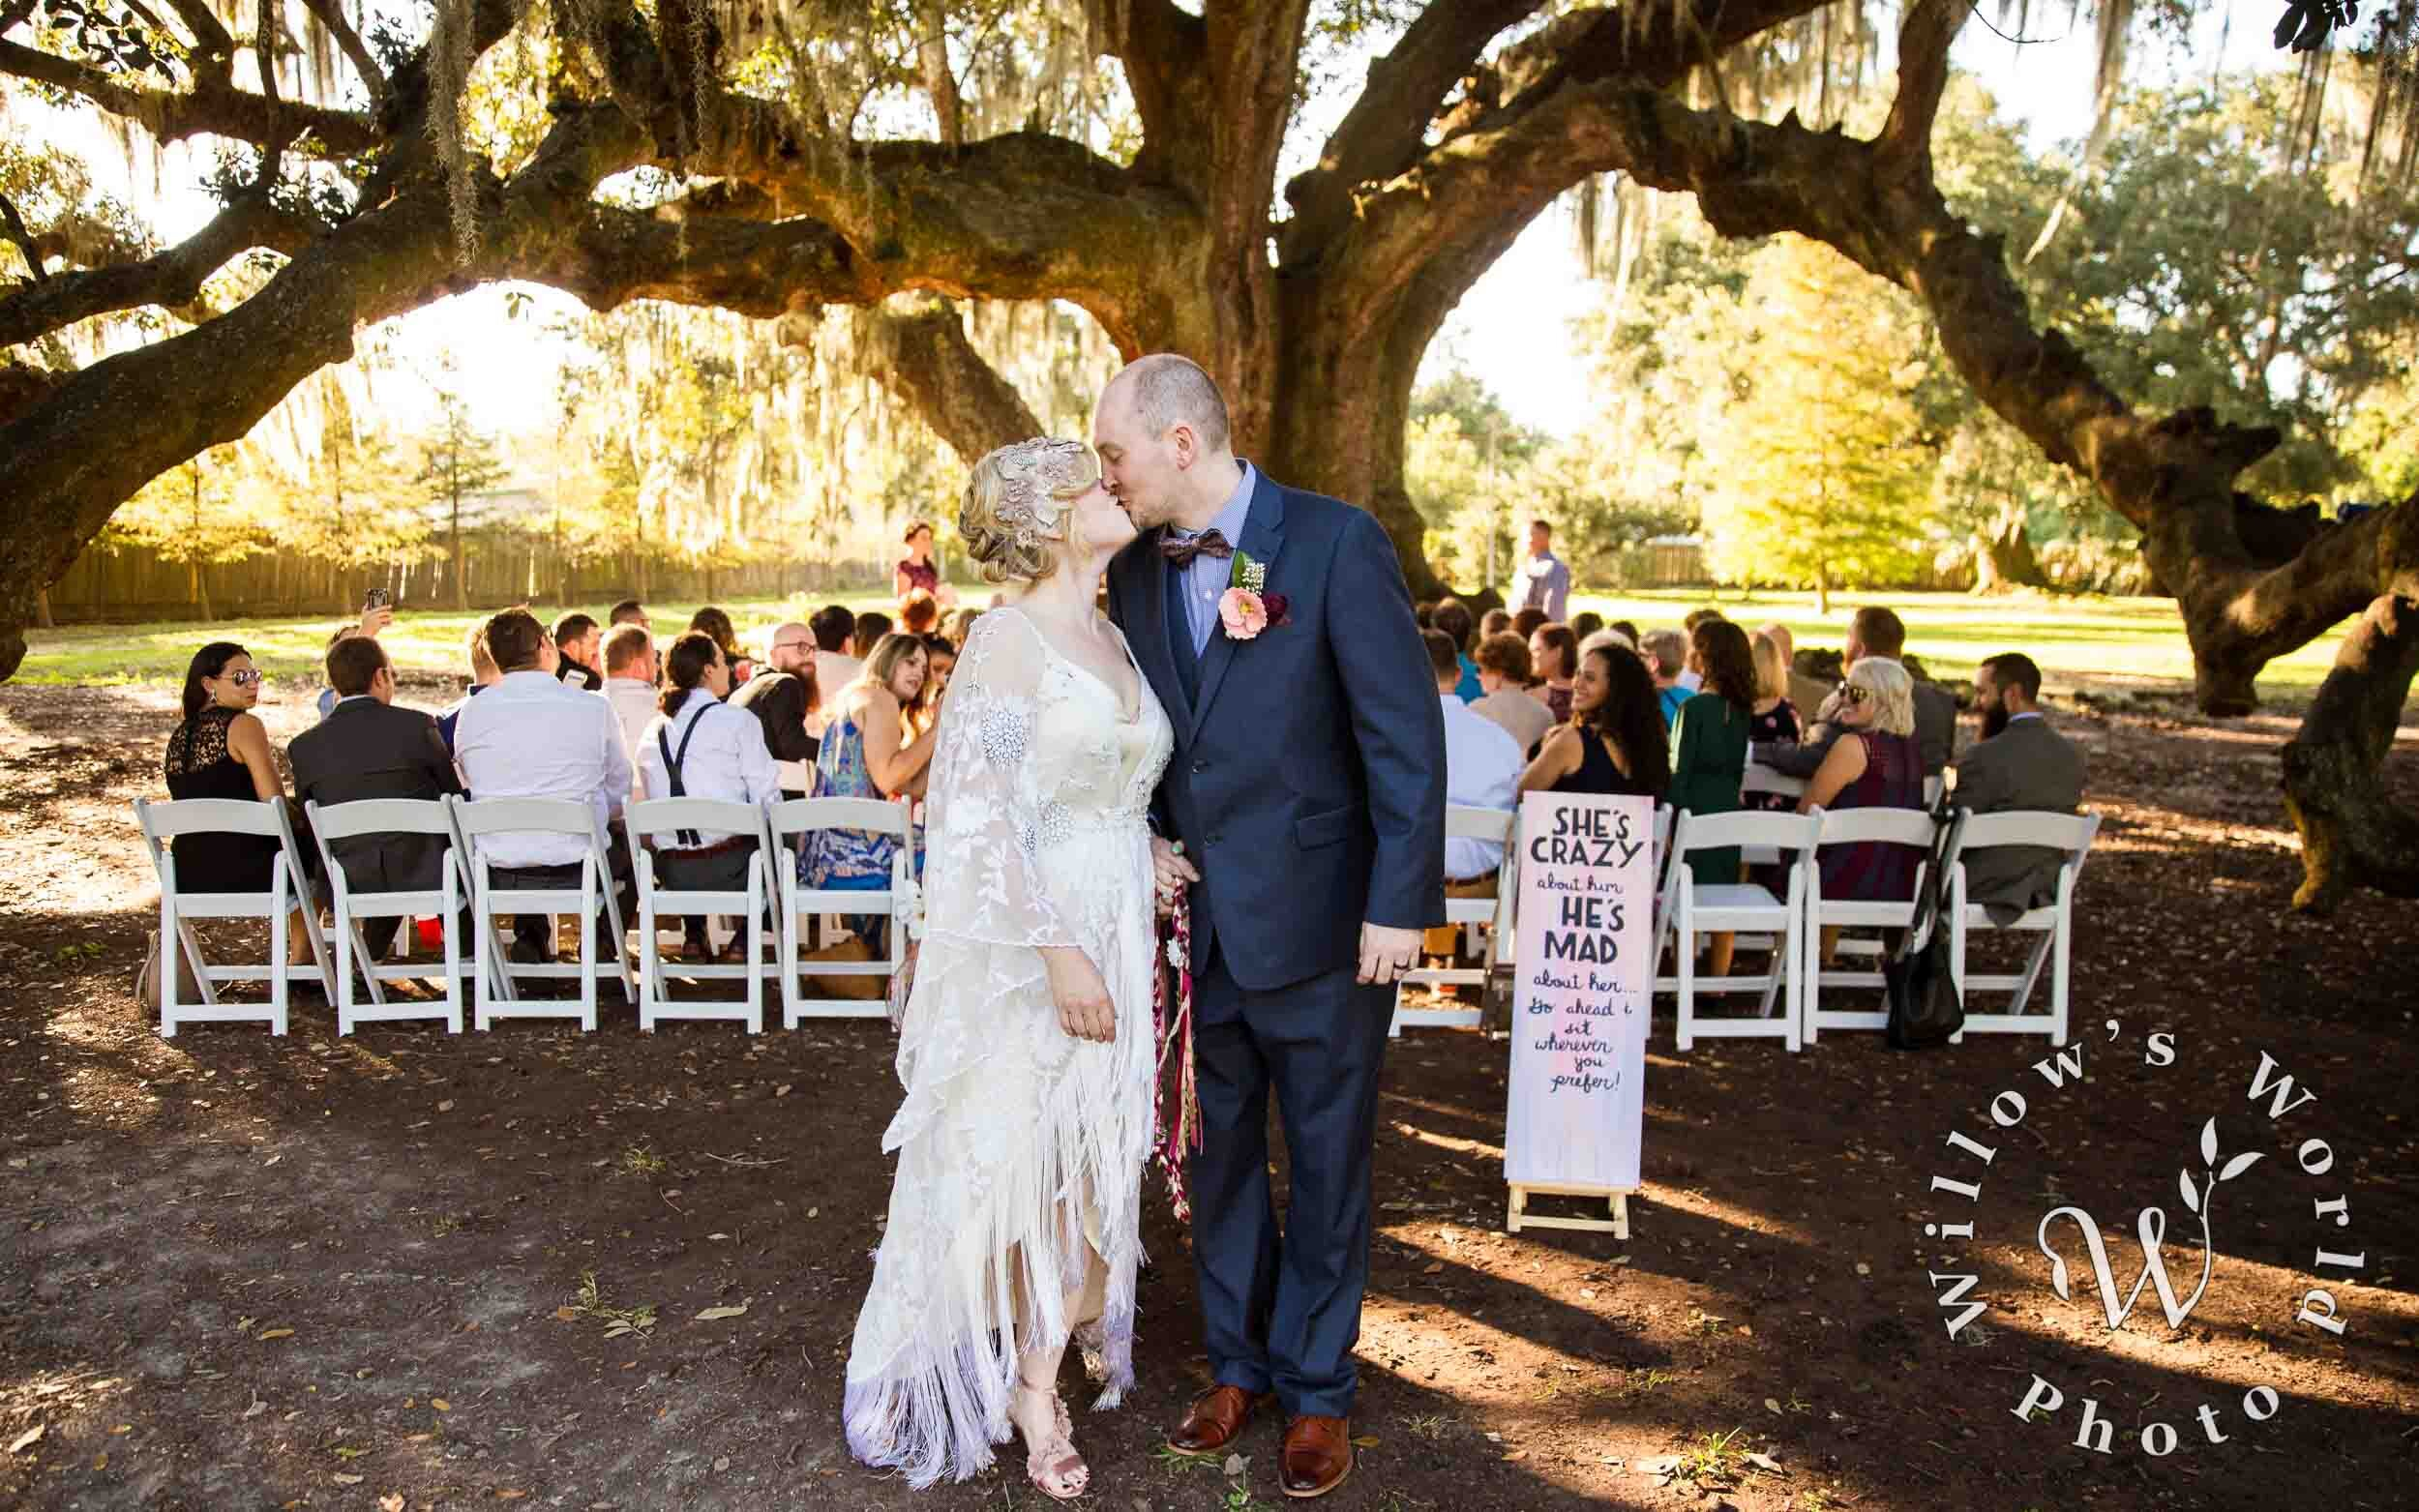 60-Audubon-Park-Tree-of-Life-New-Orleans-Wedding-Willows-World-Photo.jpg